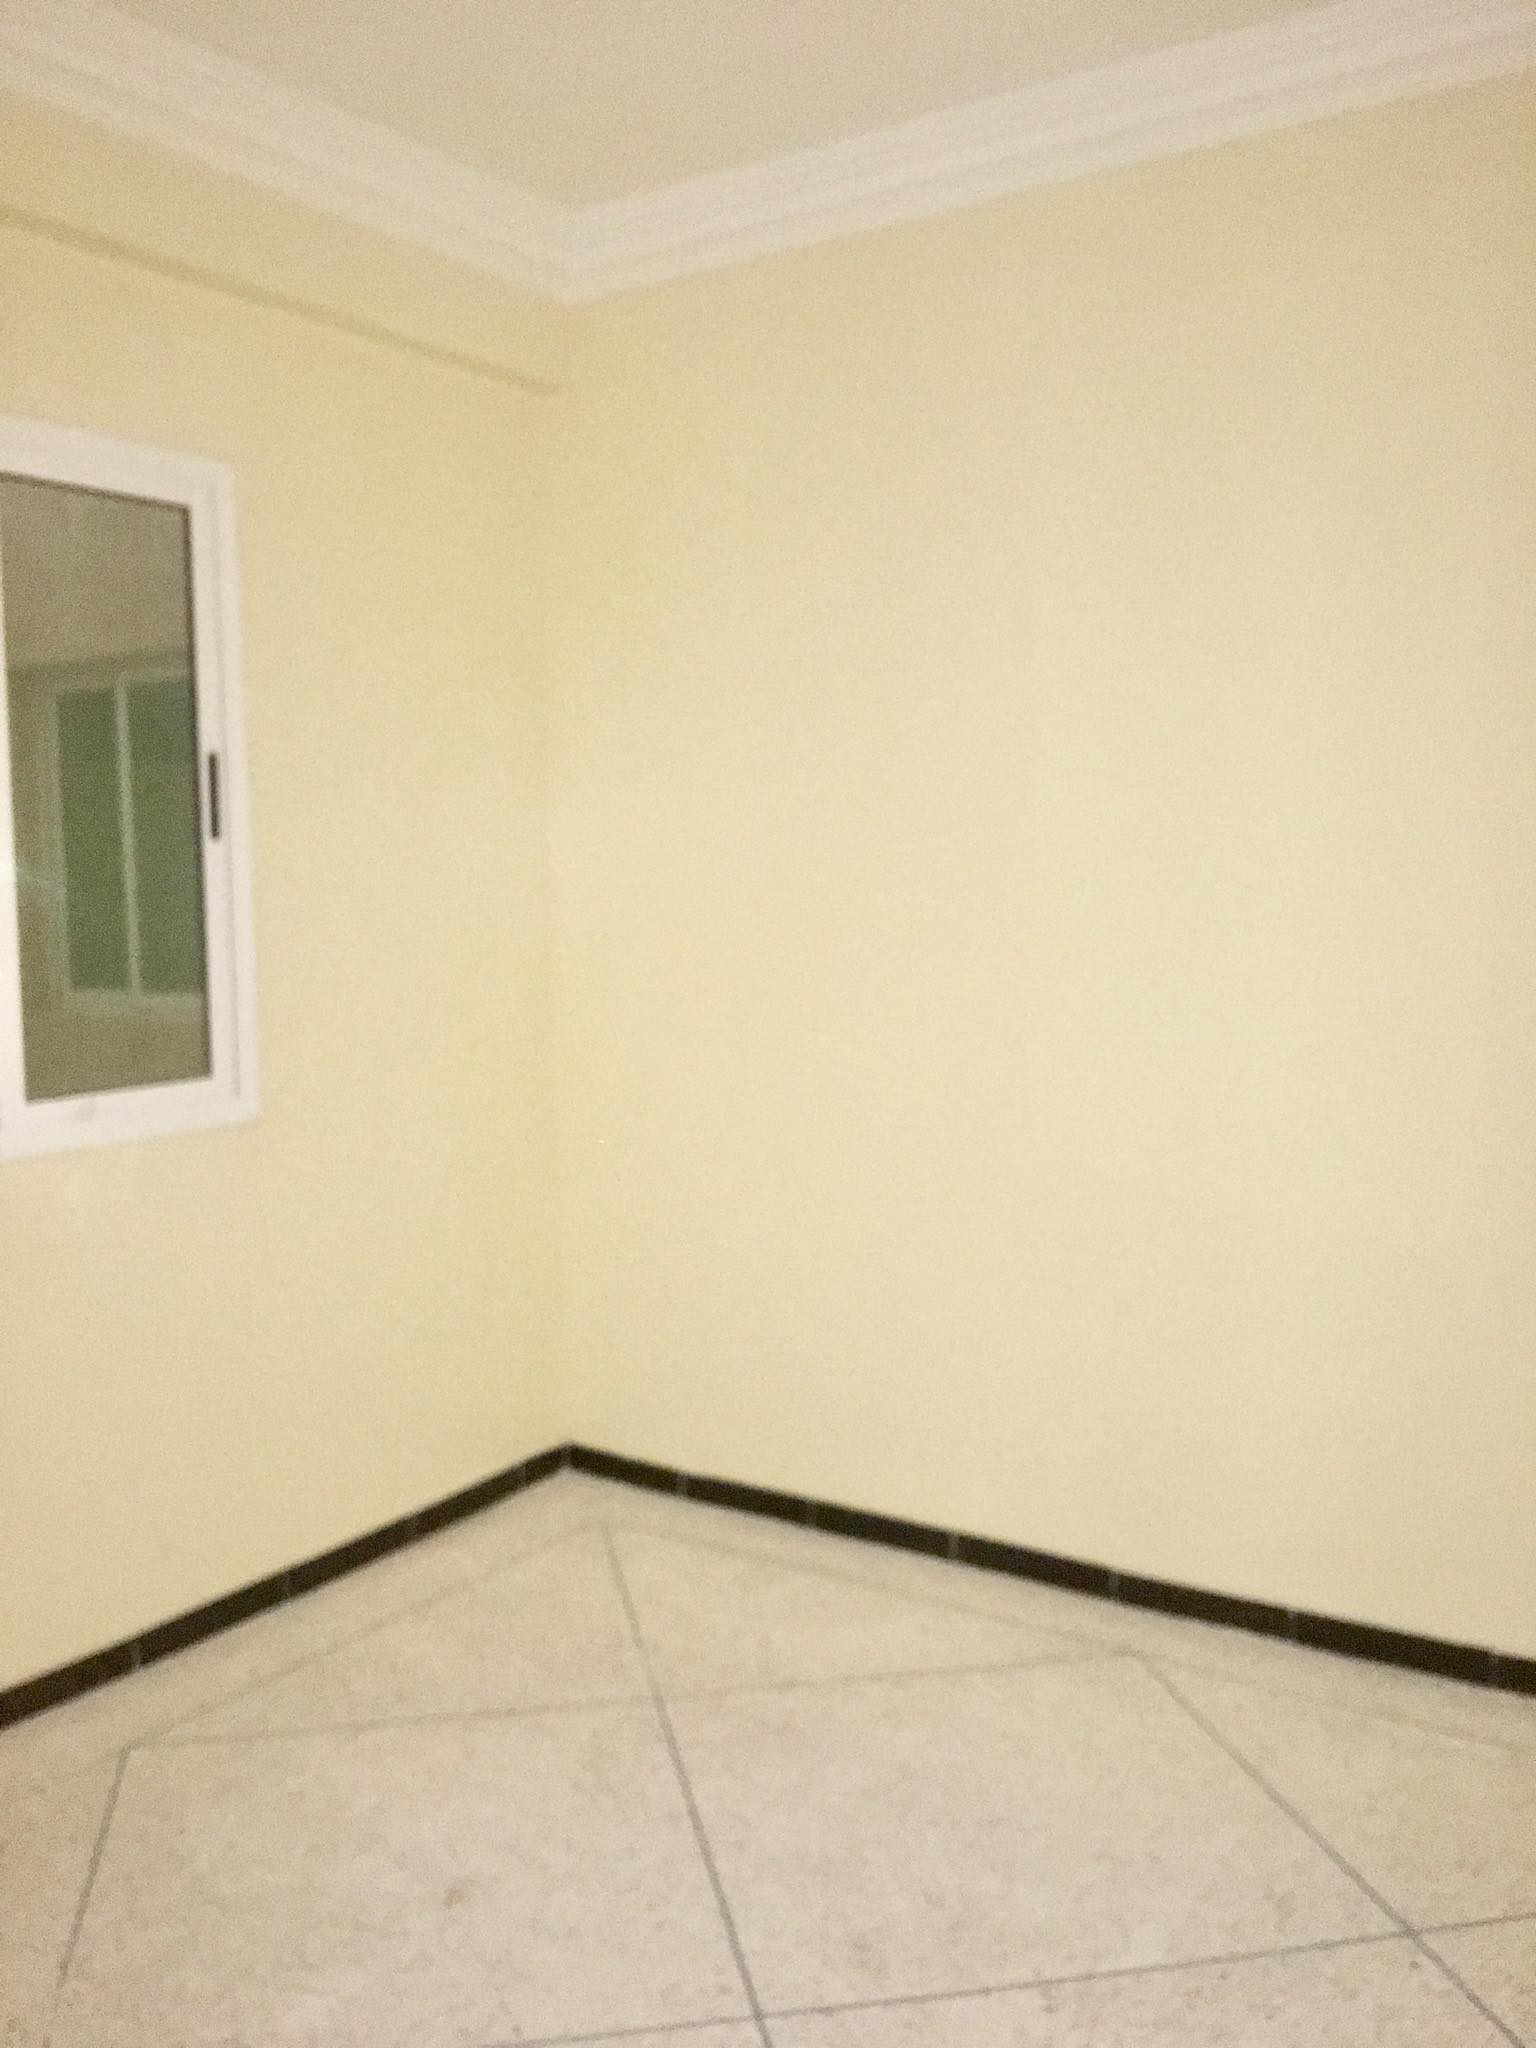 Appartement vide à hay Mohammadi